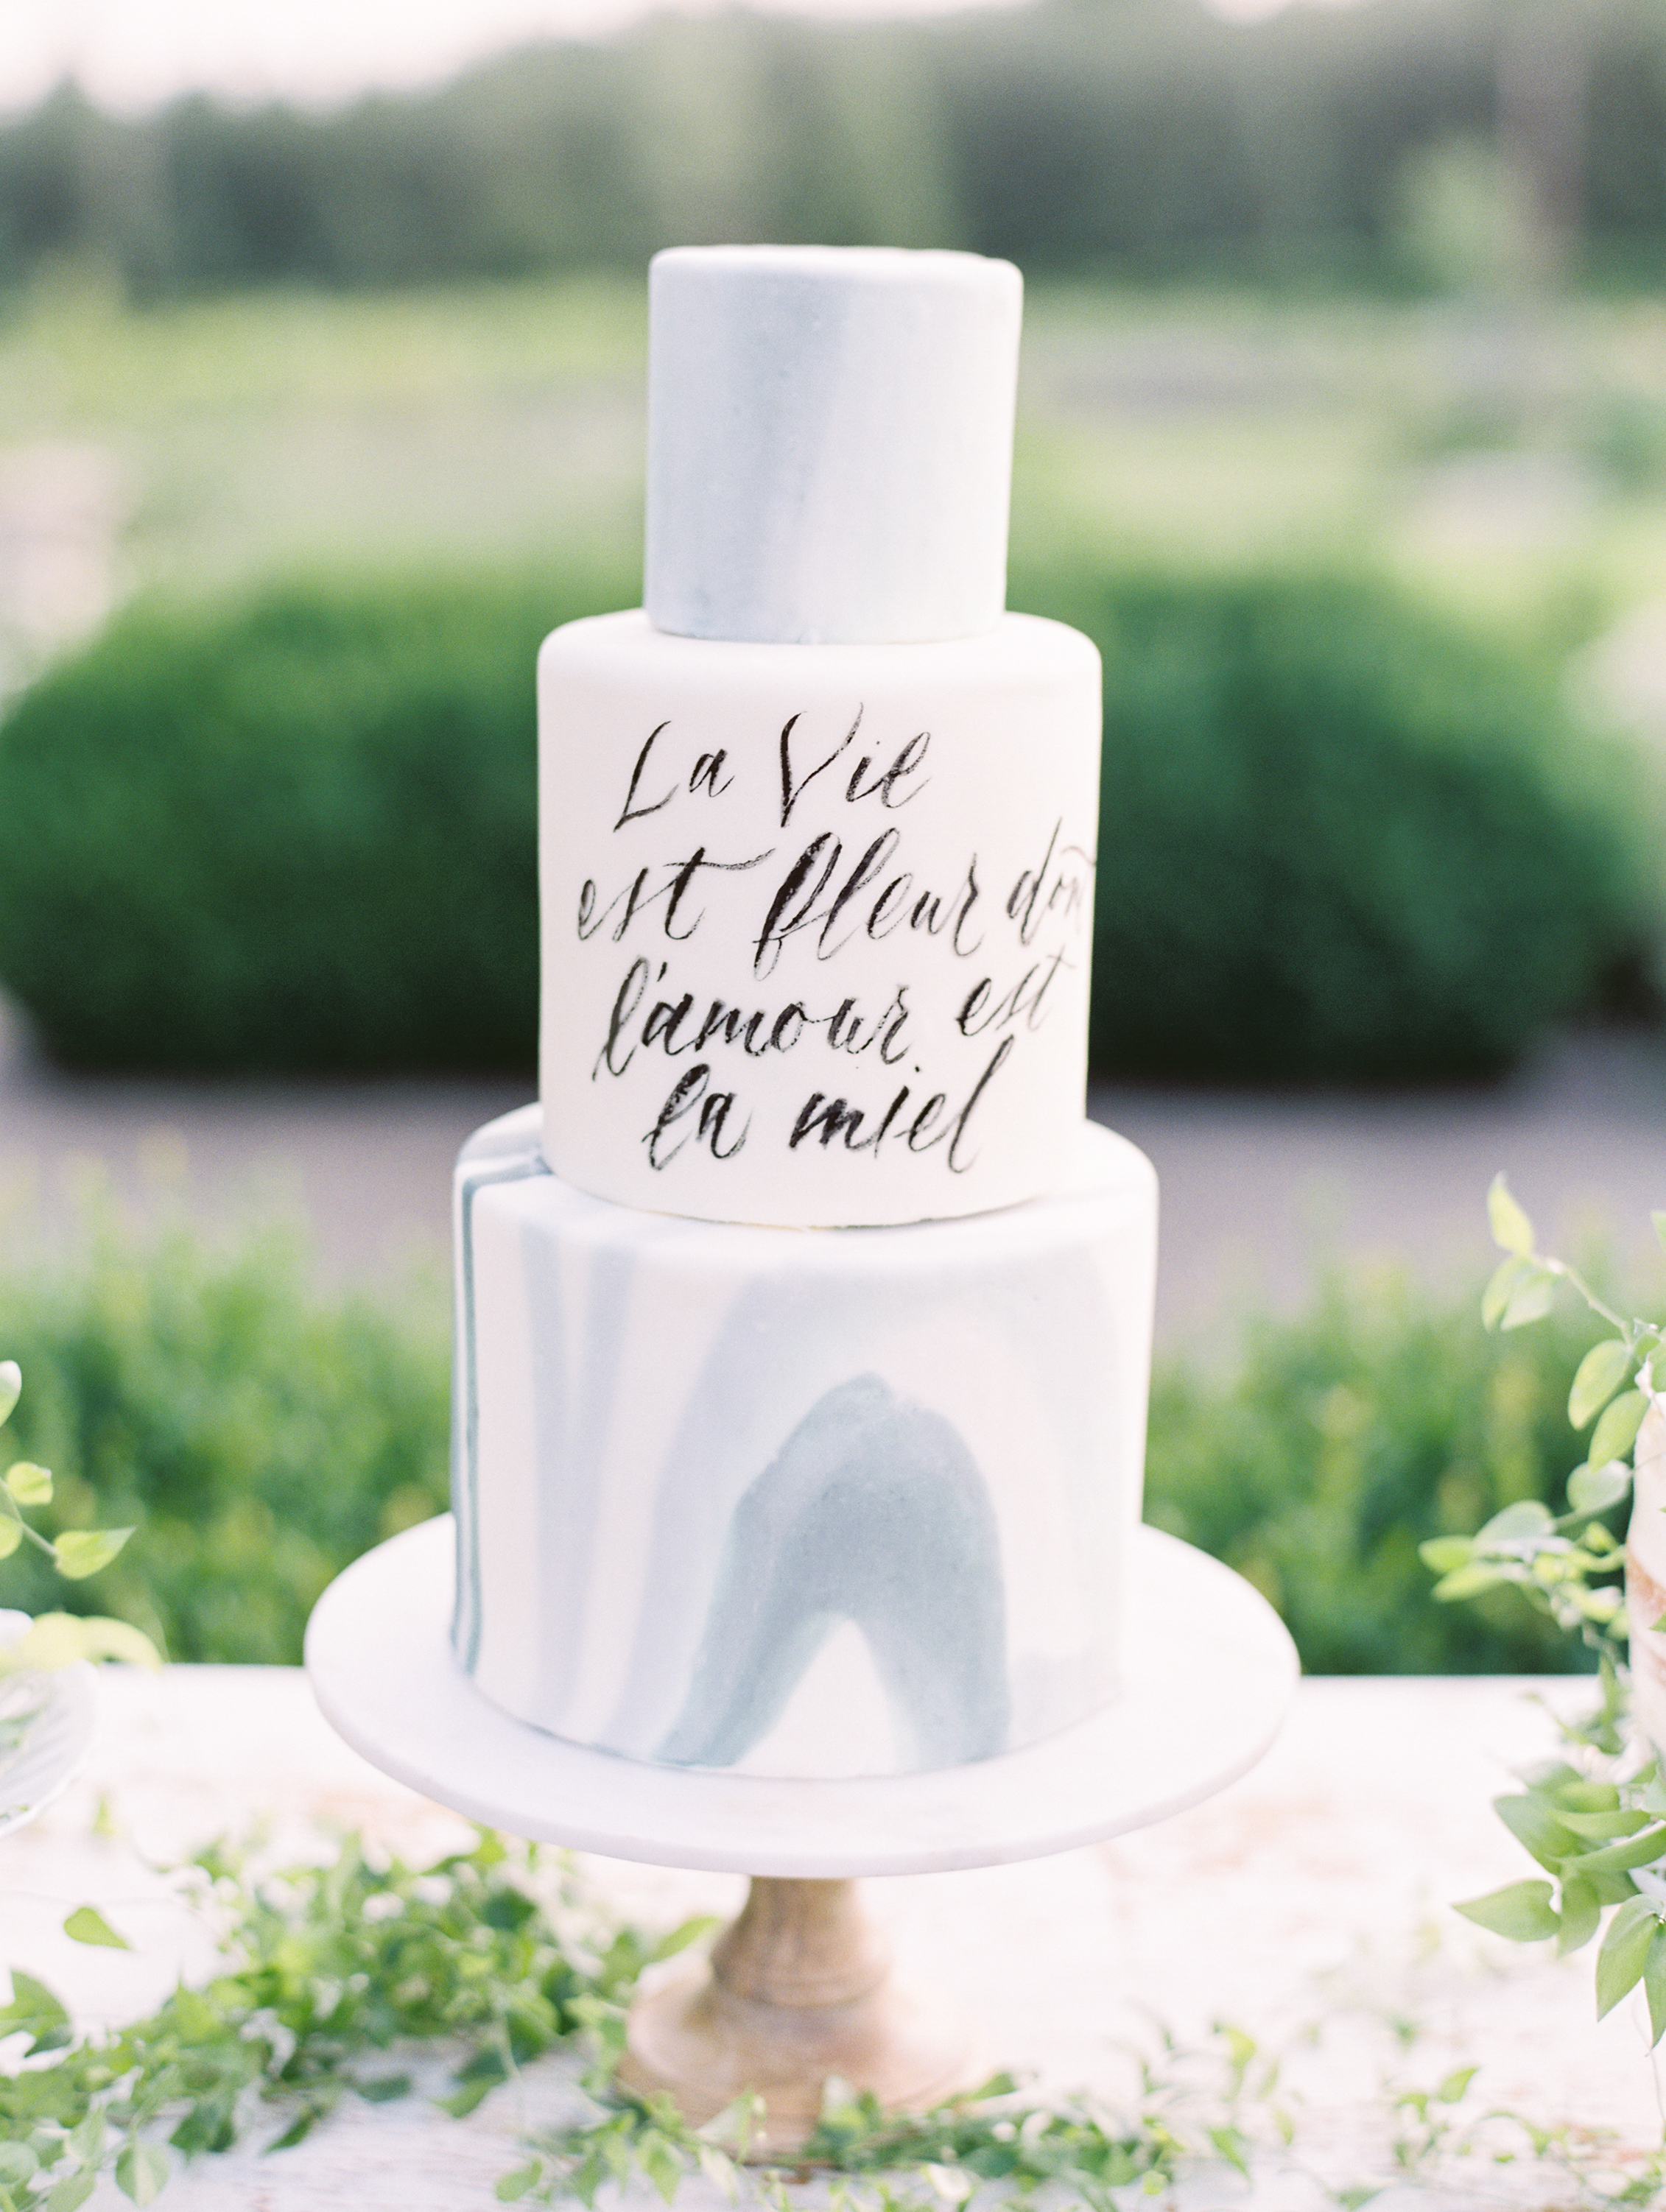 blue marbled cake with quote